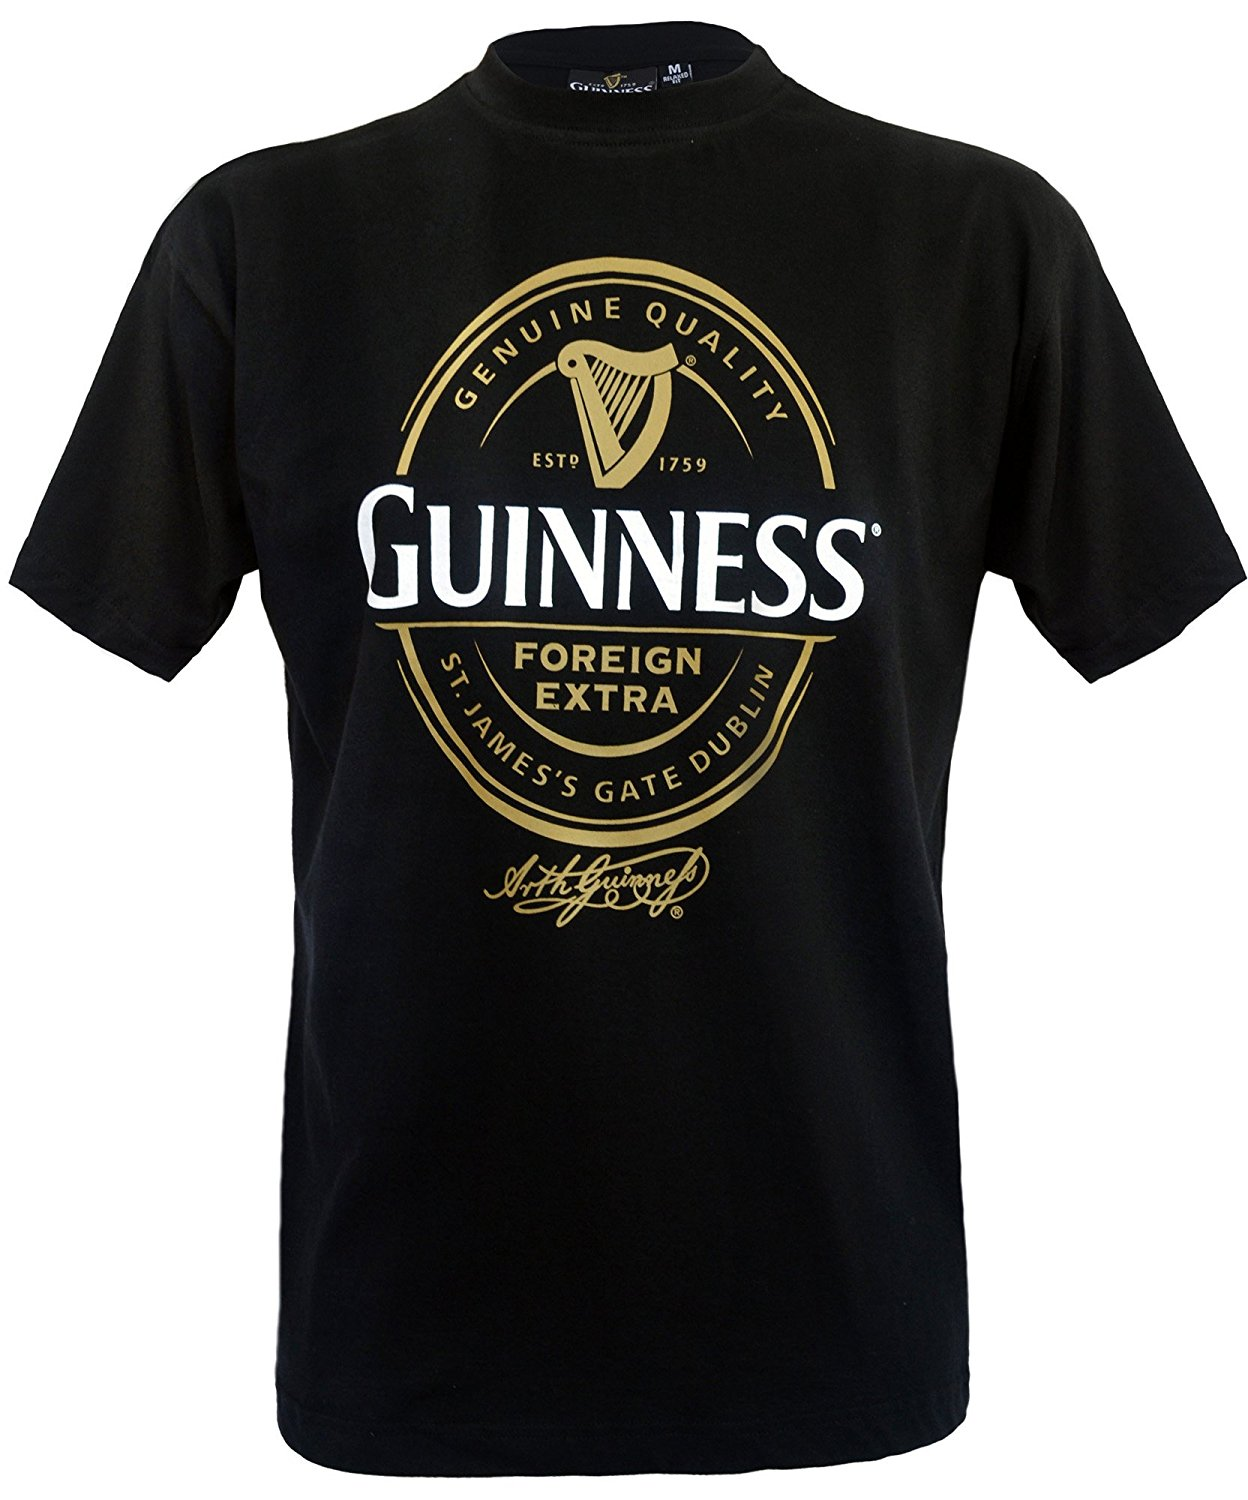 Guinness Official Merchandise Foreign Extra Label Round Neck Printed Mens T-Shirt Sleeves Boy Cotton Men T-Shirt Top Tee